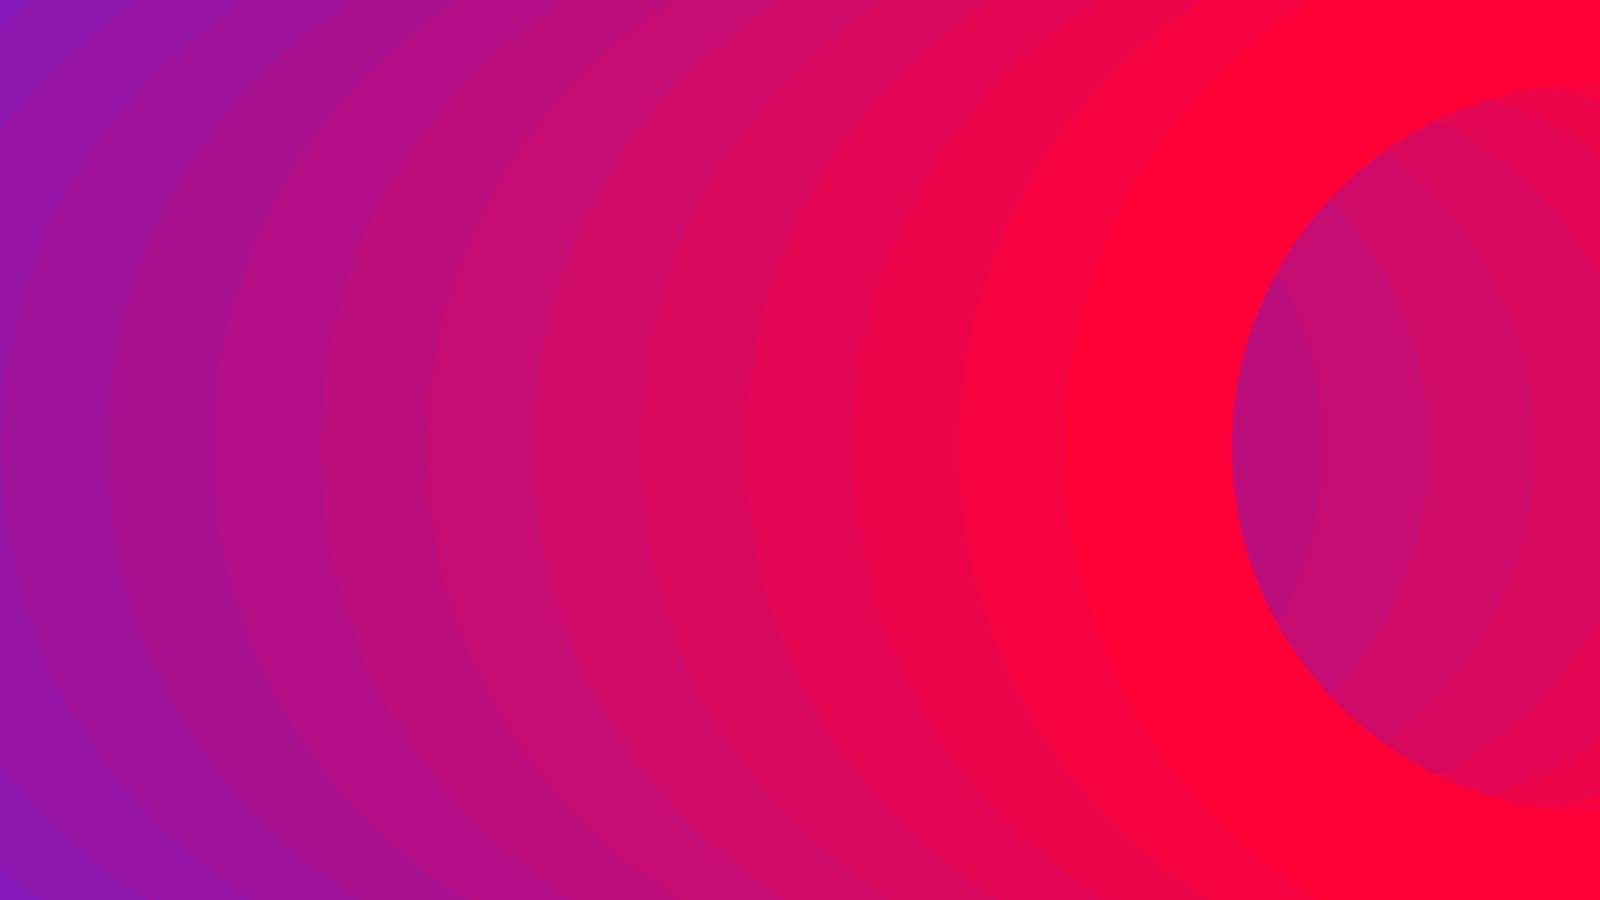 Violet and Pink vector layout with rings. Futuristic abstract illustration for website, poster, banner ads.